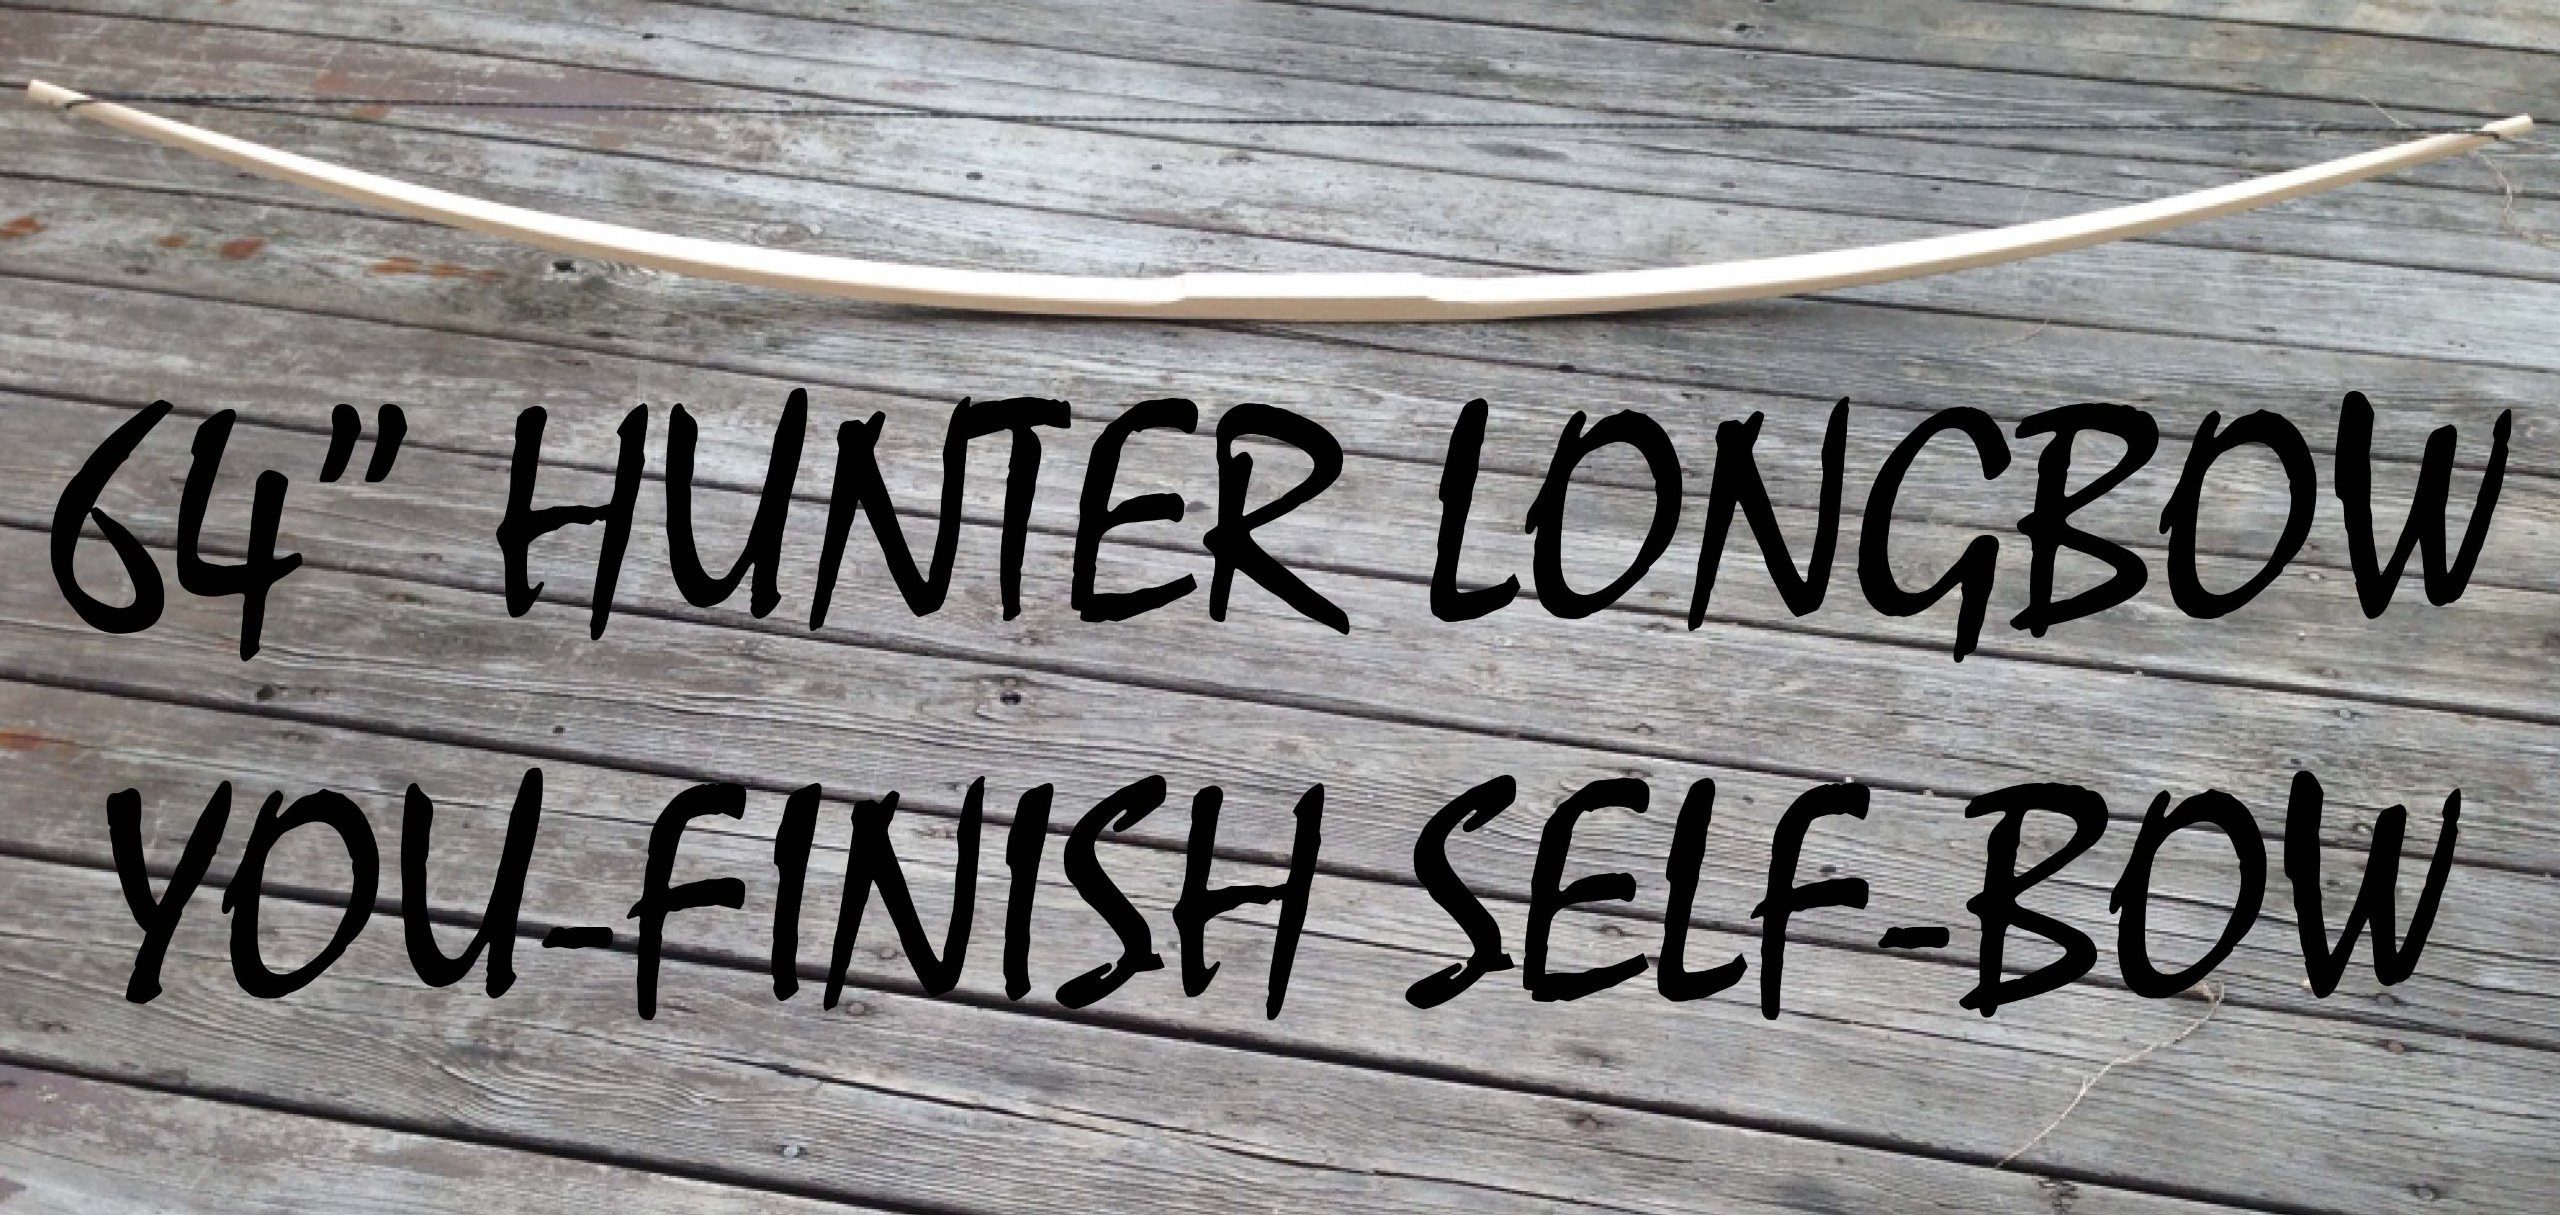 60lb 64'' You-Finish Traditional Hickory Longbow! Competition or Hunting Bow! Wood Archery!